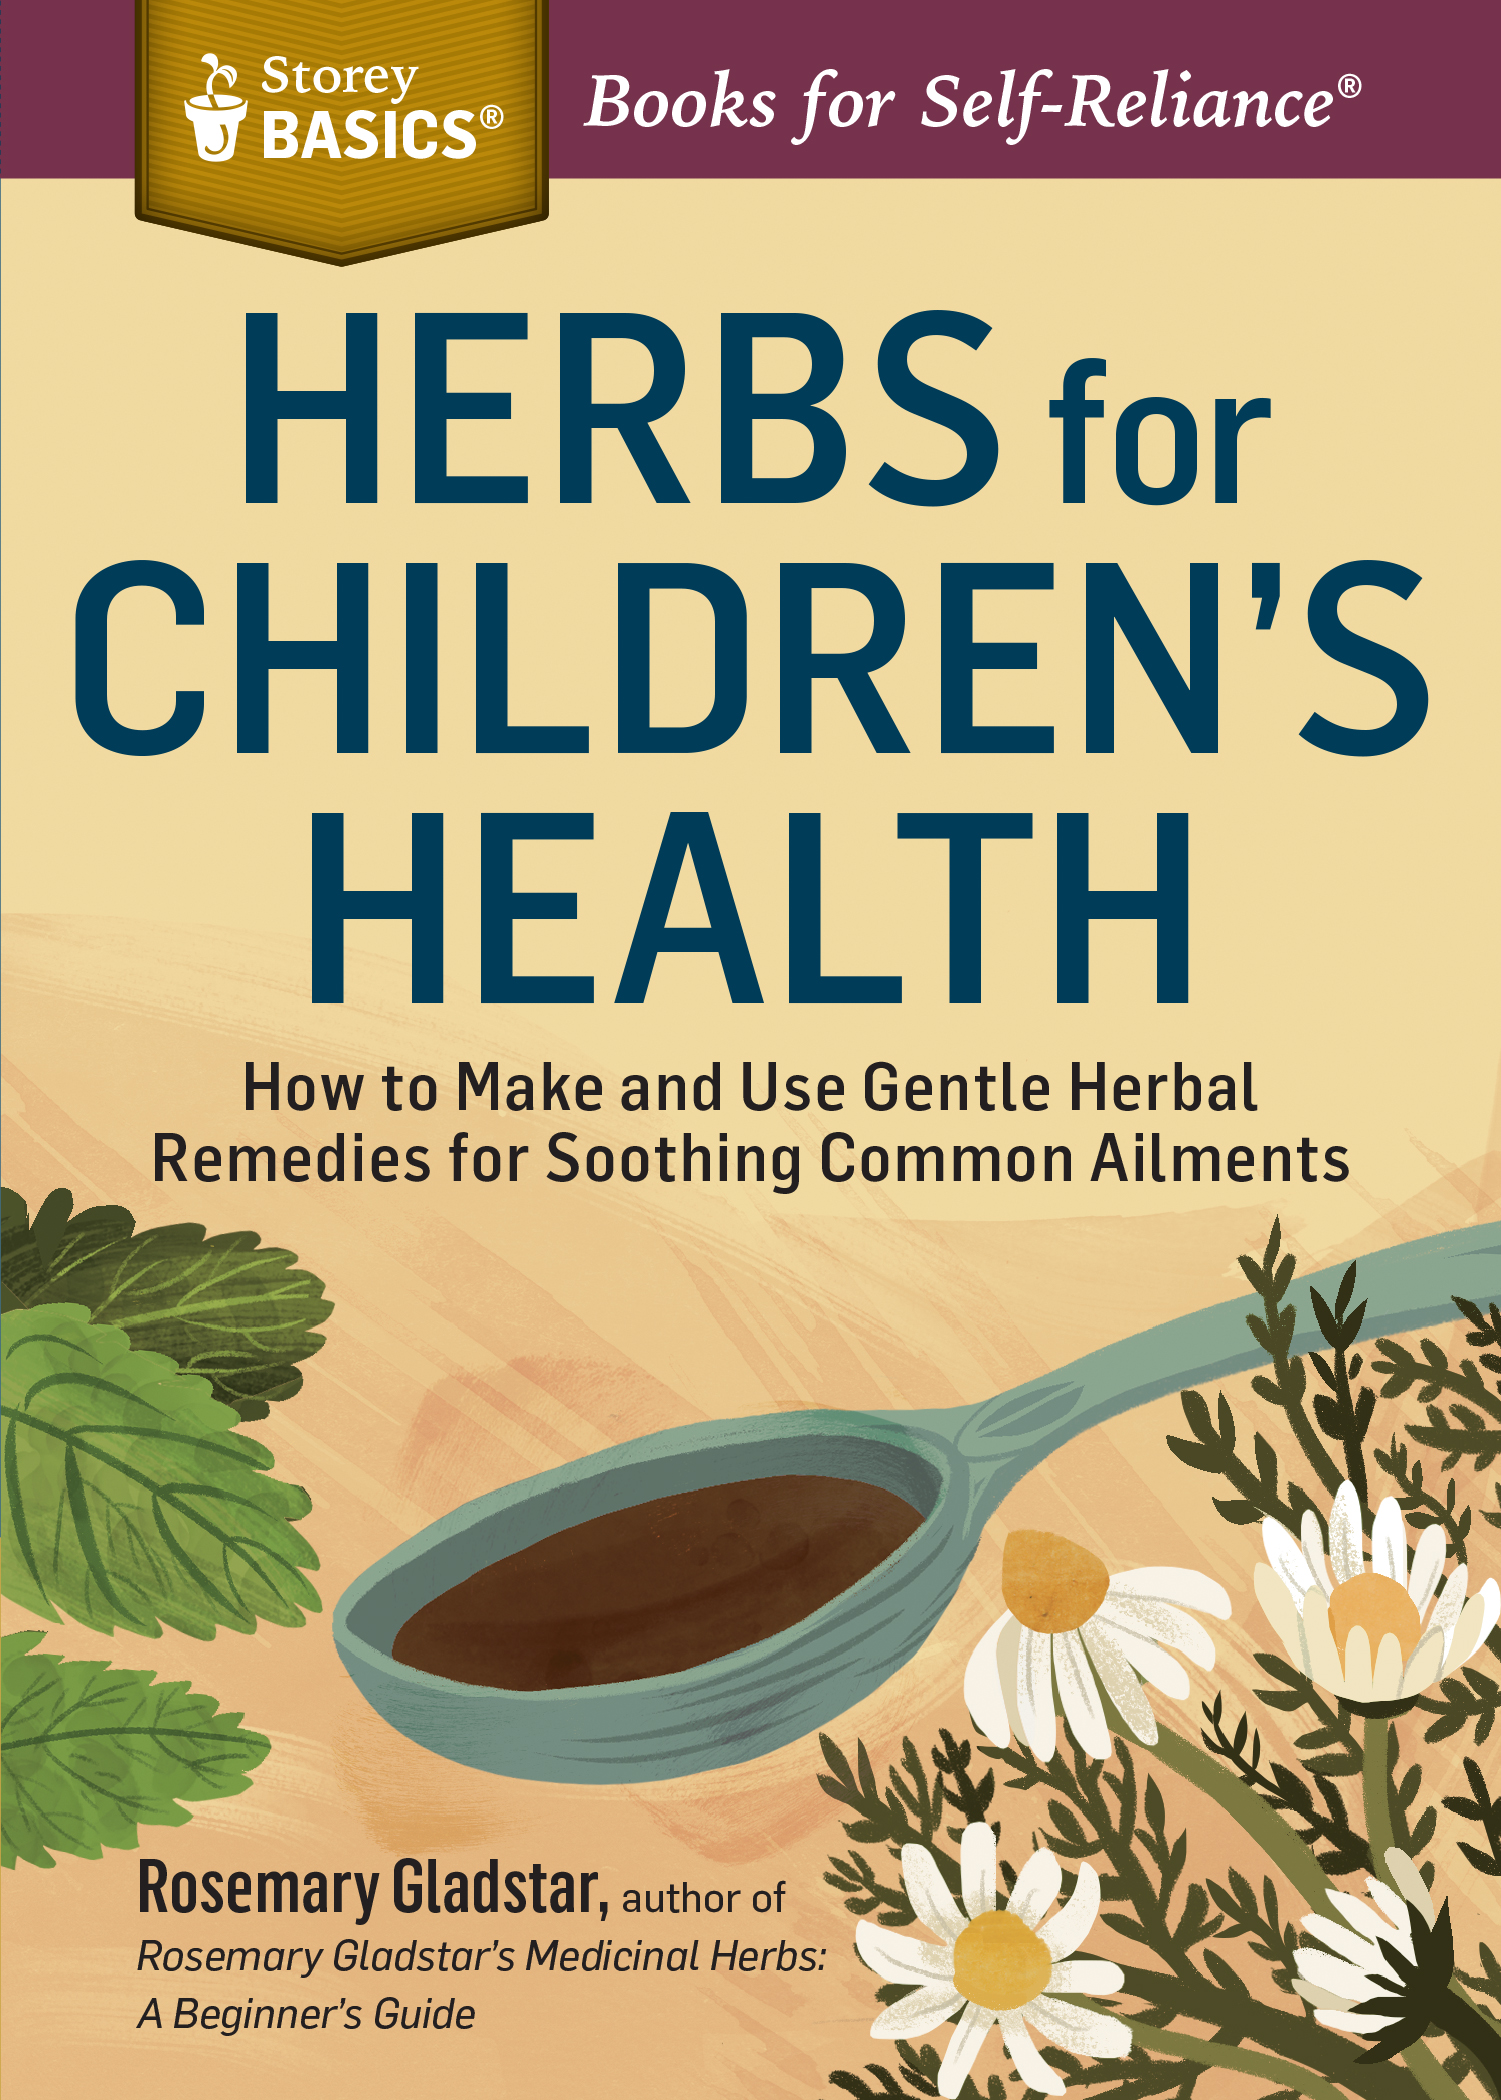 Herbs for Children's Health How to Make and Use Gentle Herbal Remedies for Soothing Common Ailments. A Storey BASICS® Title - Rosemary Gladstar